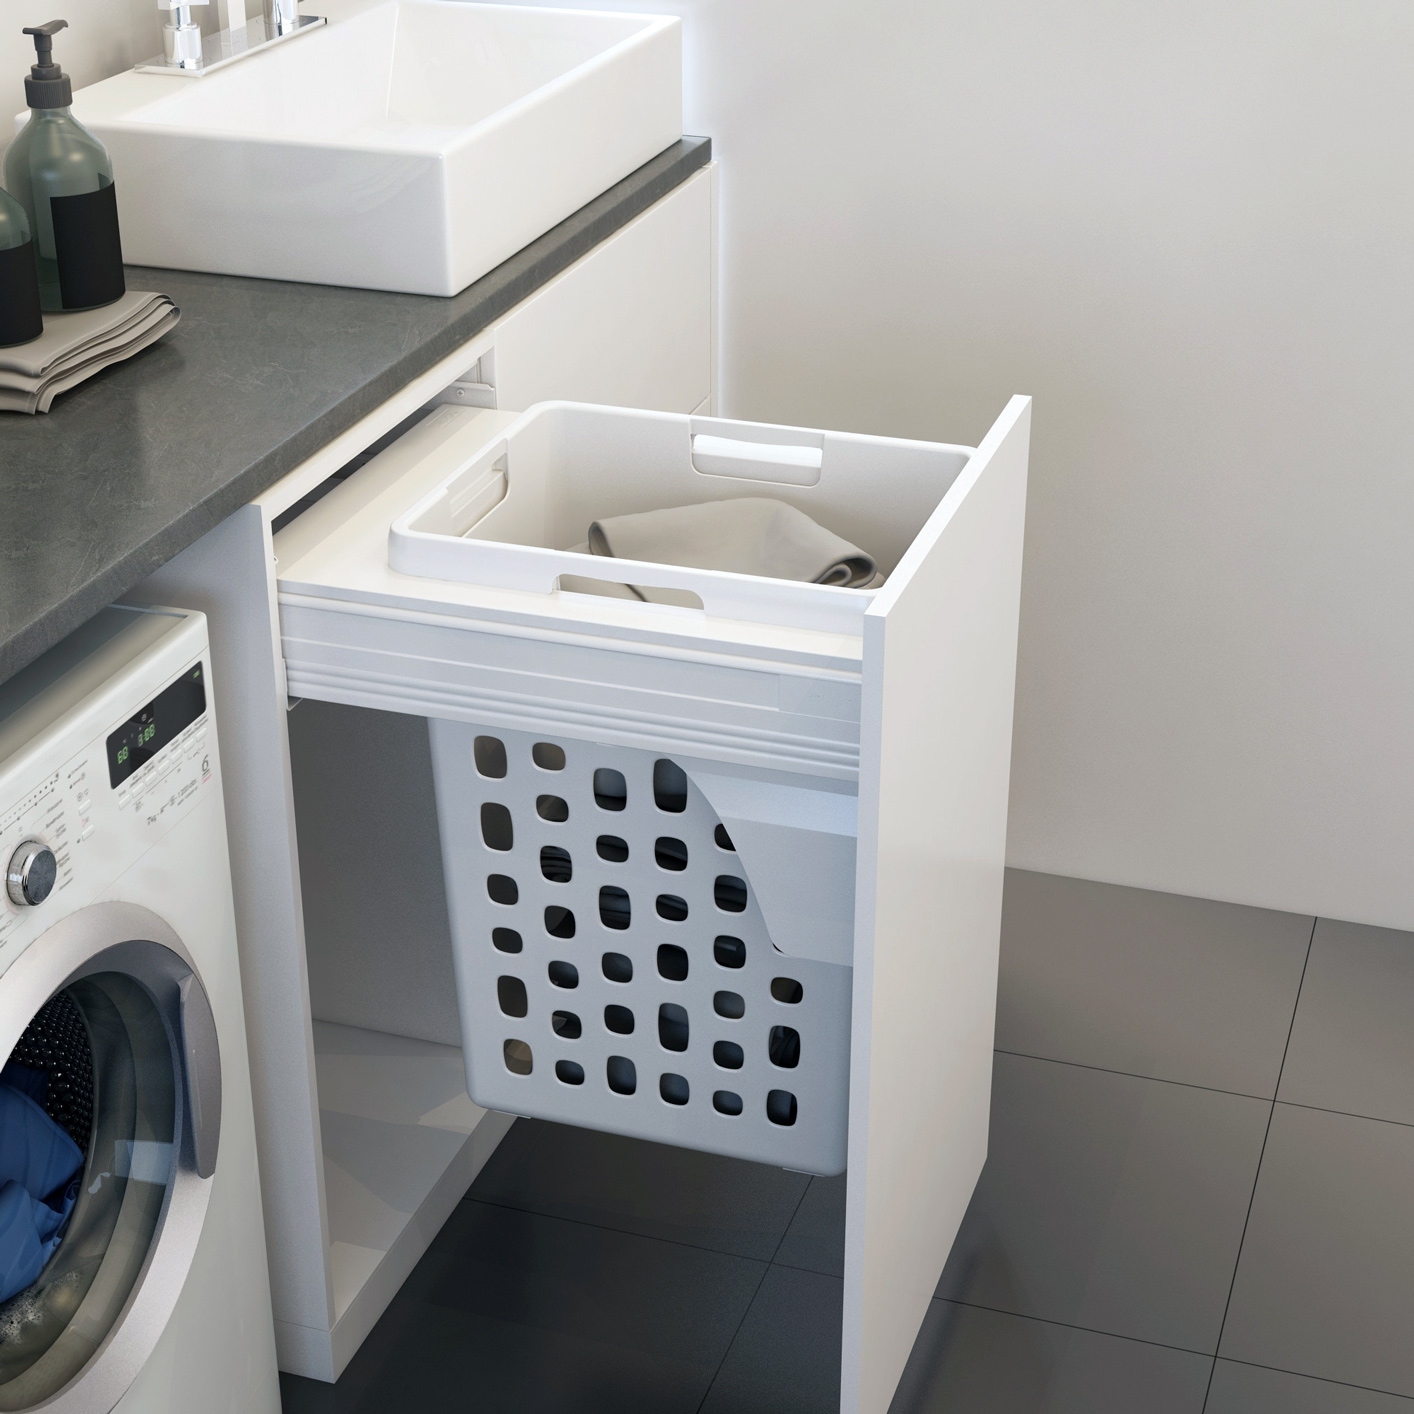 Infinity Laundry Hampers for Doublewall